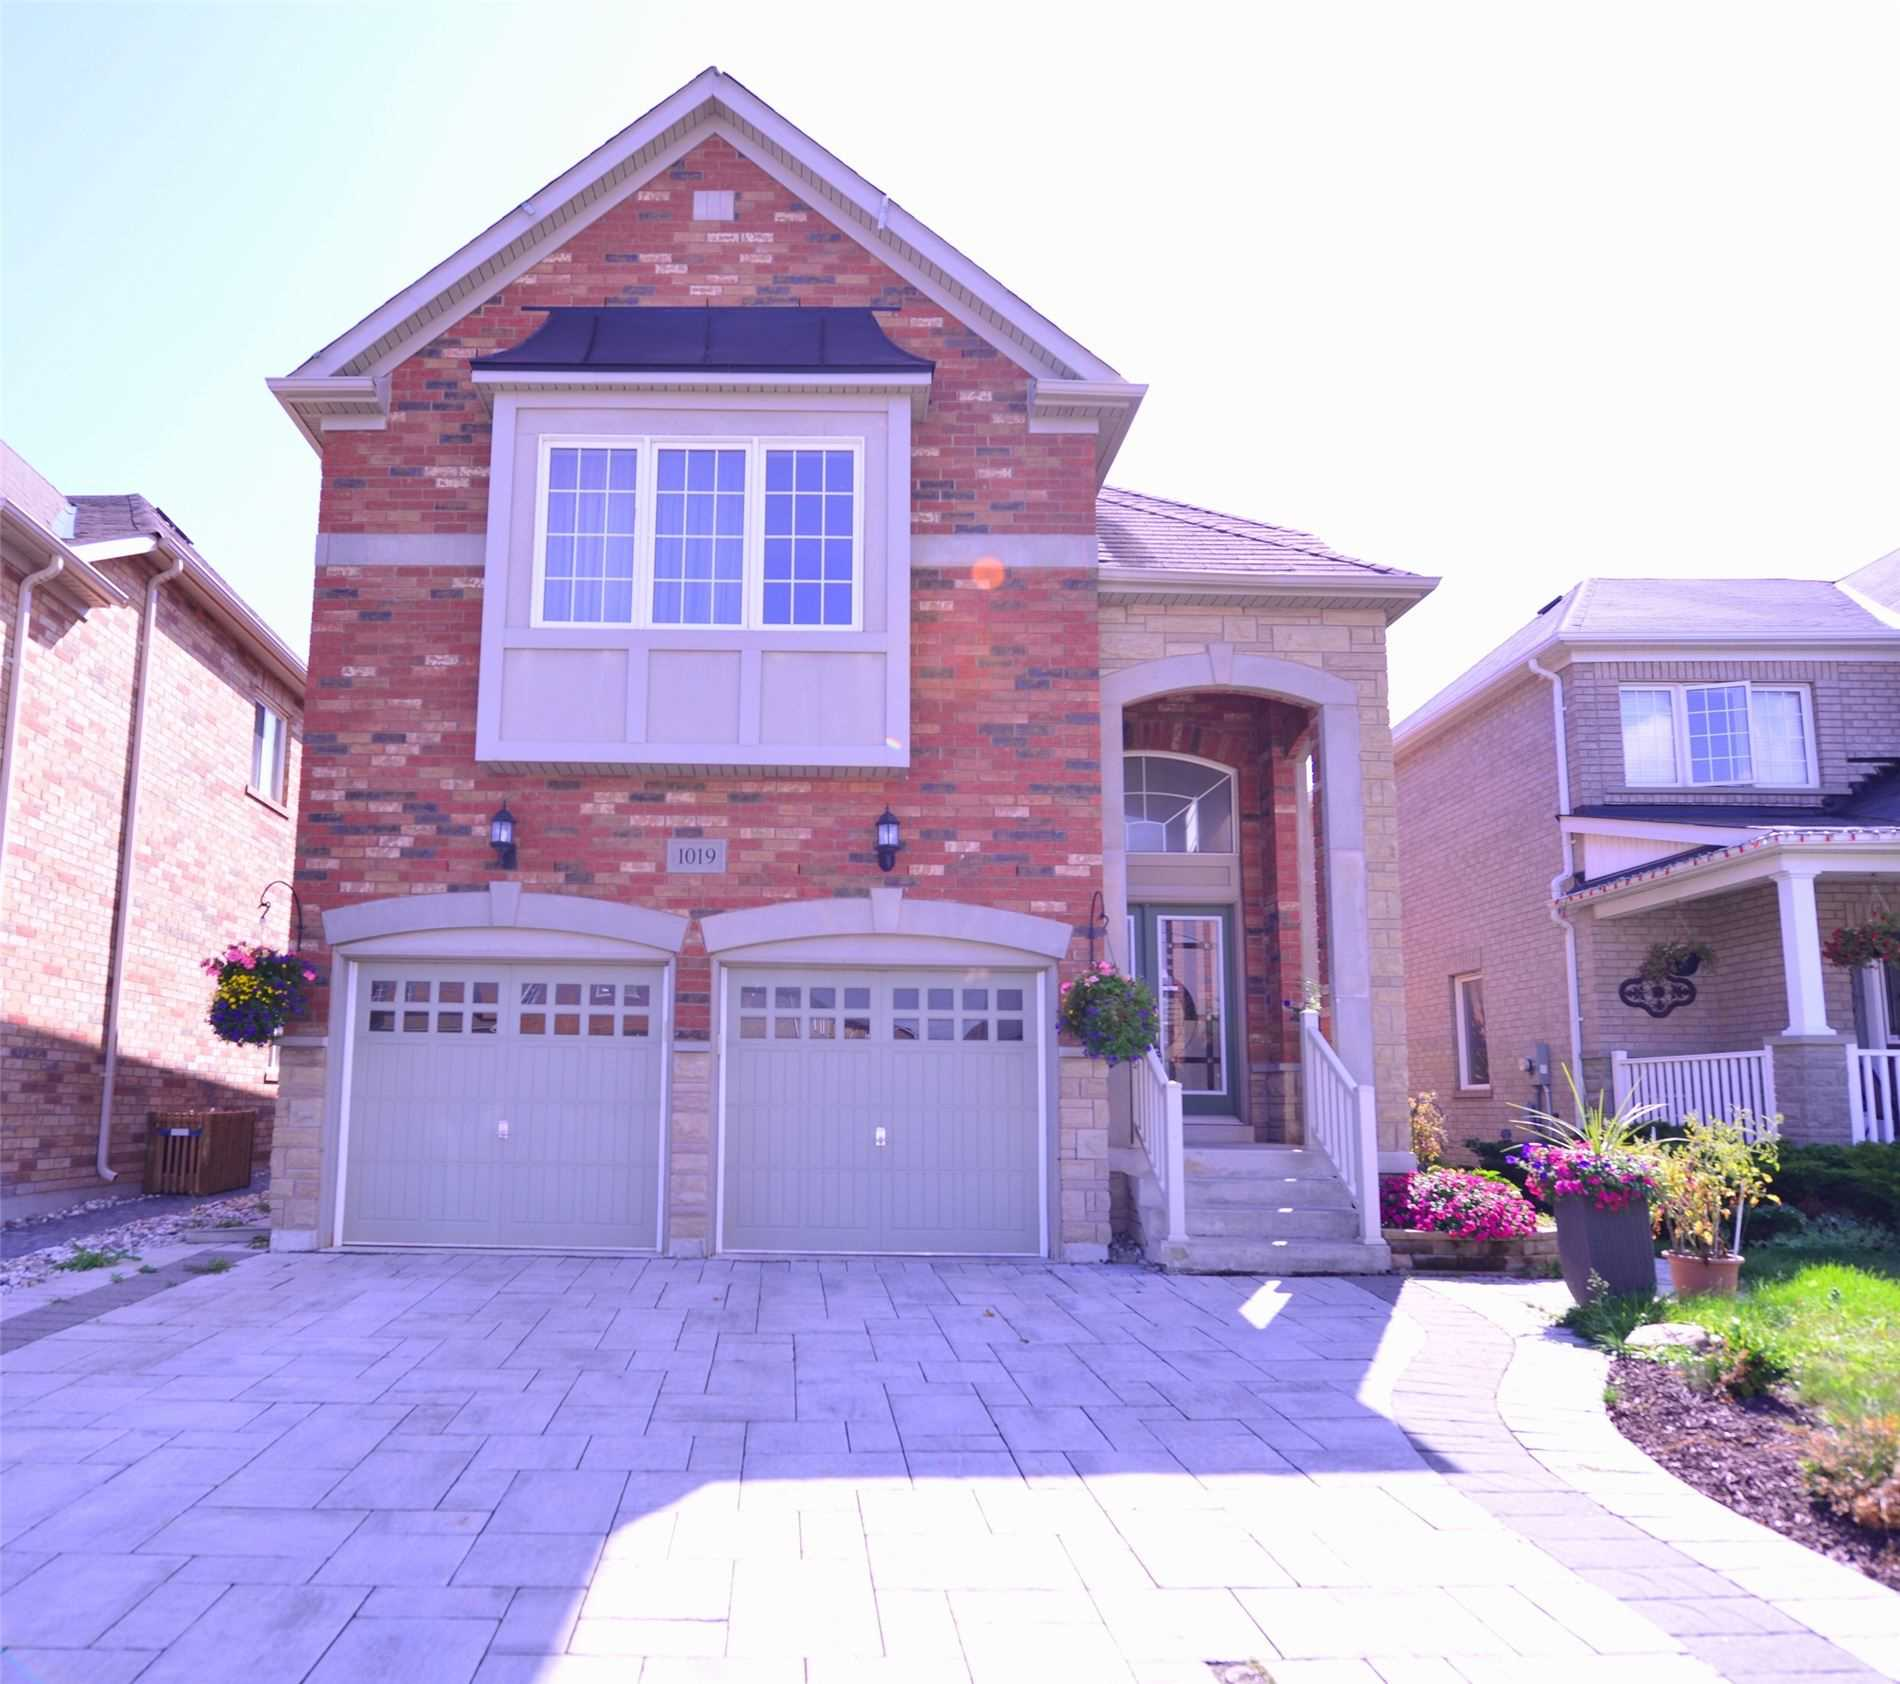 Apartments, Condos And Houses For Rent In Taunton, Oshawa